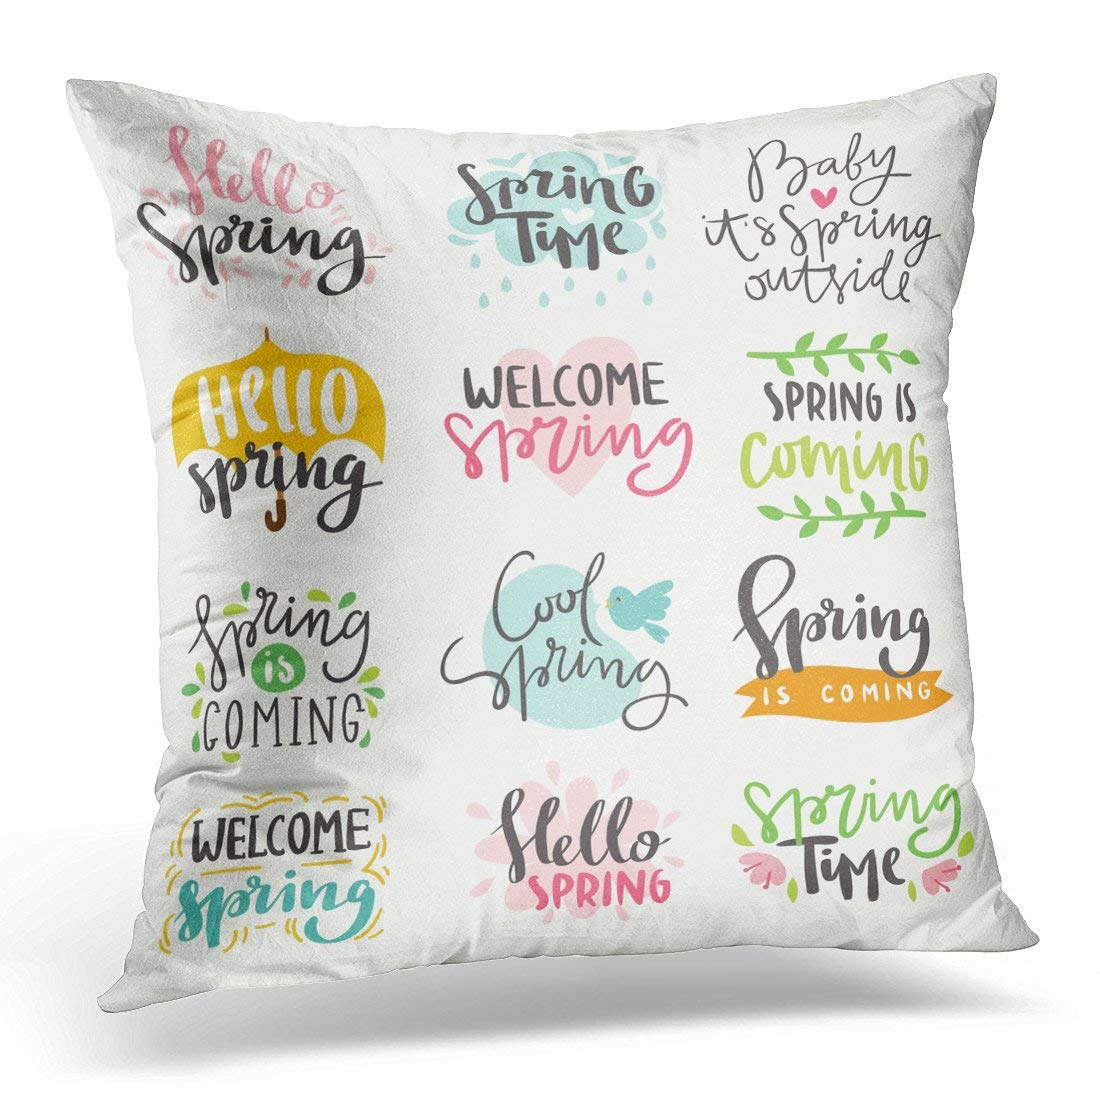 USART Green Spring Time Lettering Special Springtime Sale in Gold Black and White Colors Summer Text Quote Throw Pillow Case Pillow Cover Sofa Home Decor 16x16 Inches